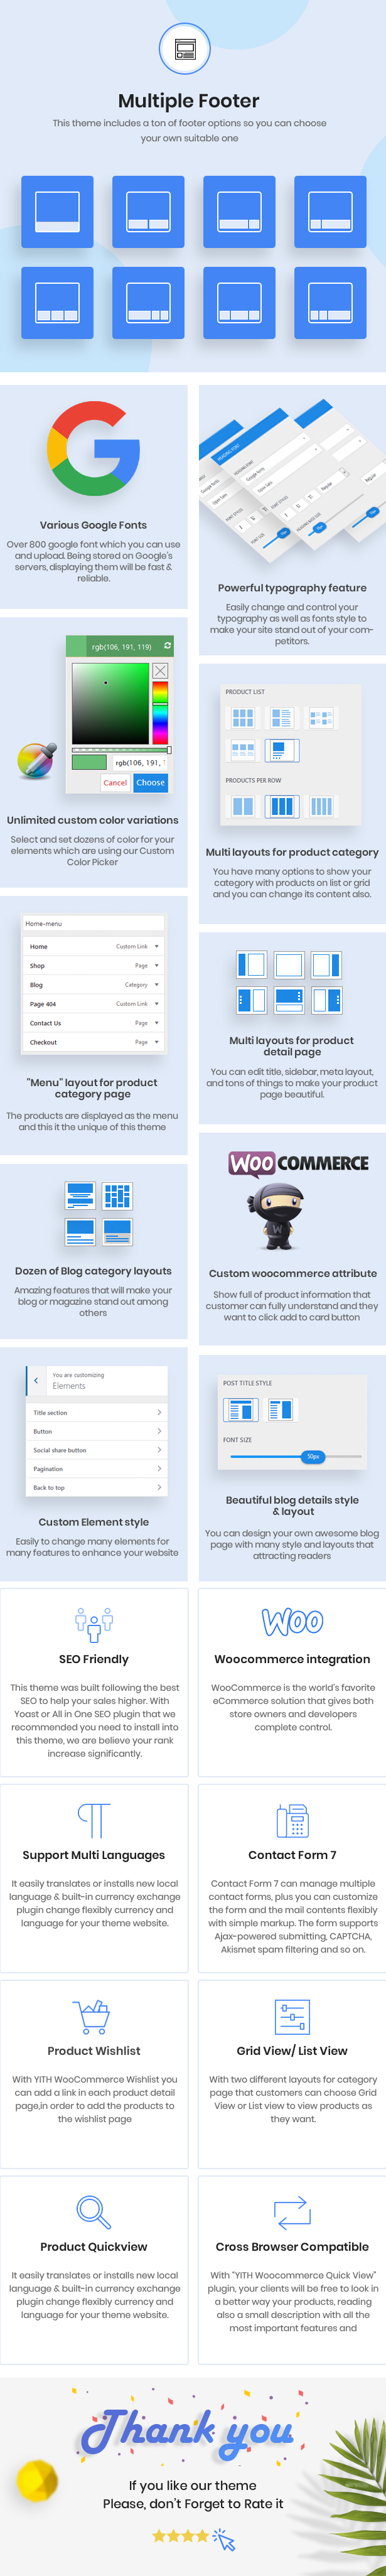 Aidoo - Wedding Card WooCommerce Theme - 21